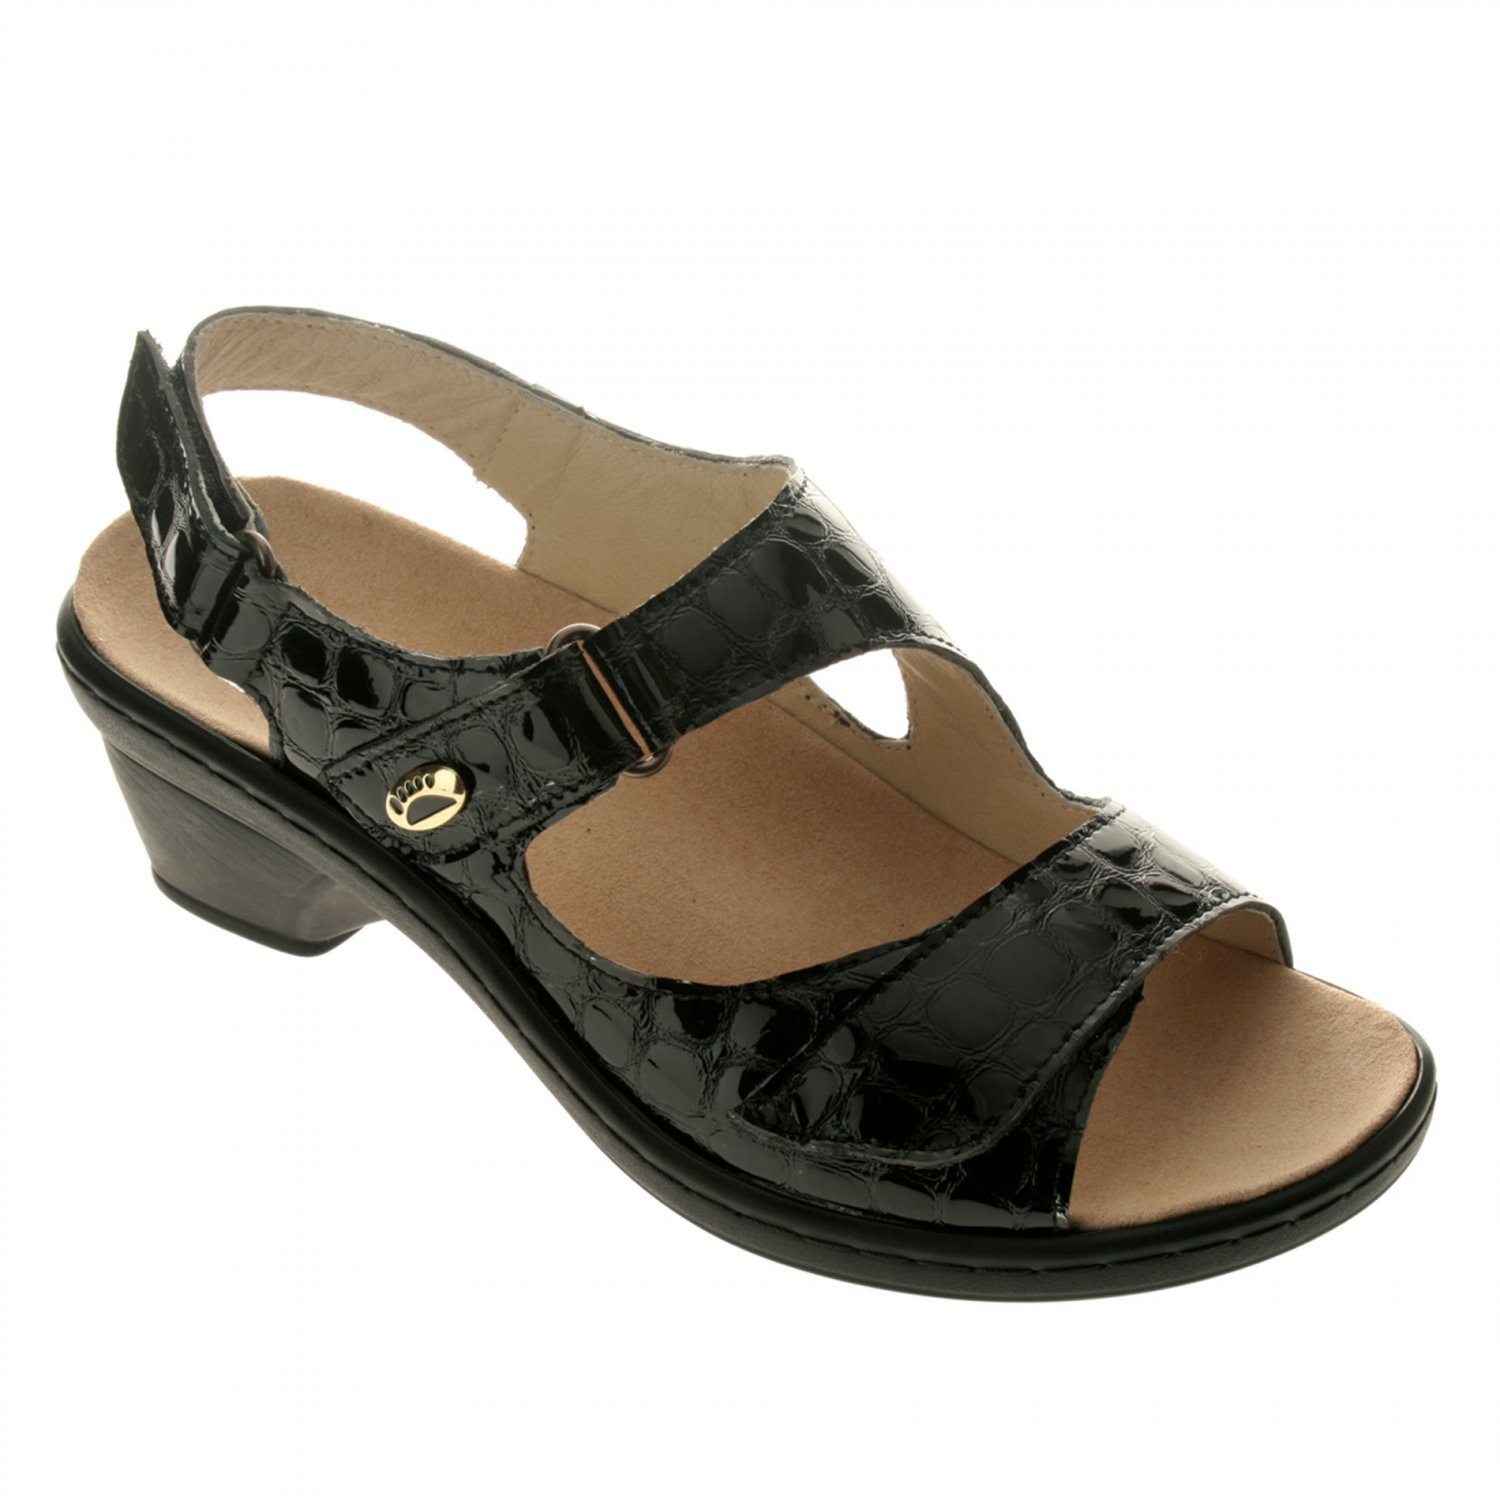 Spring Step PARMA Sandals Shoes All Sizes & Colors $69